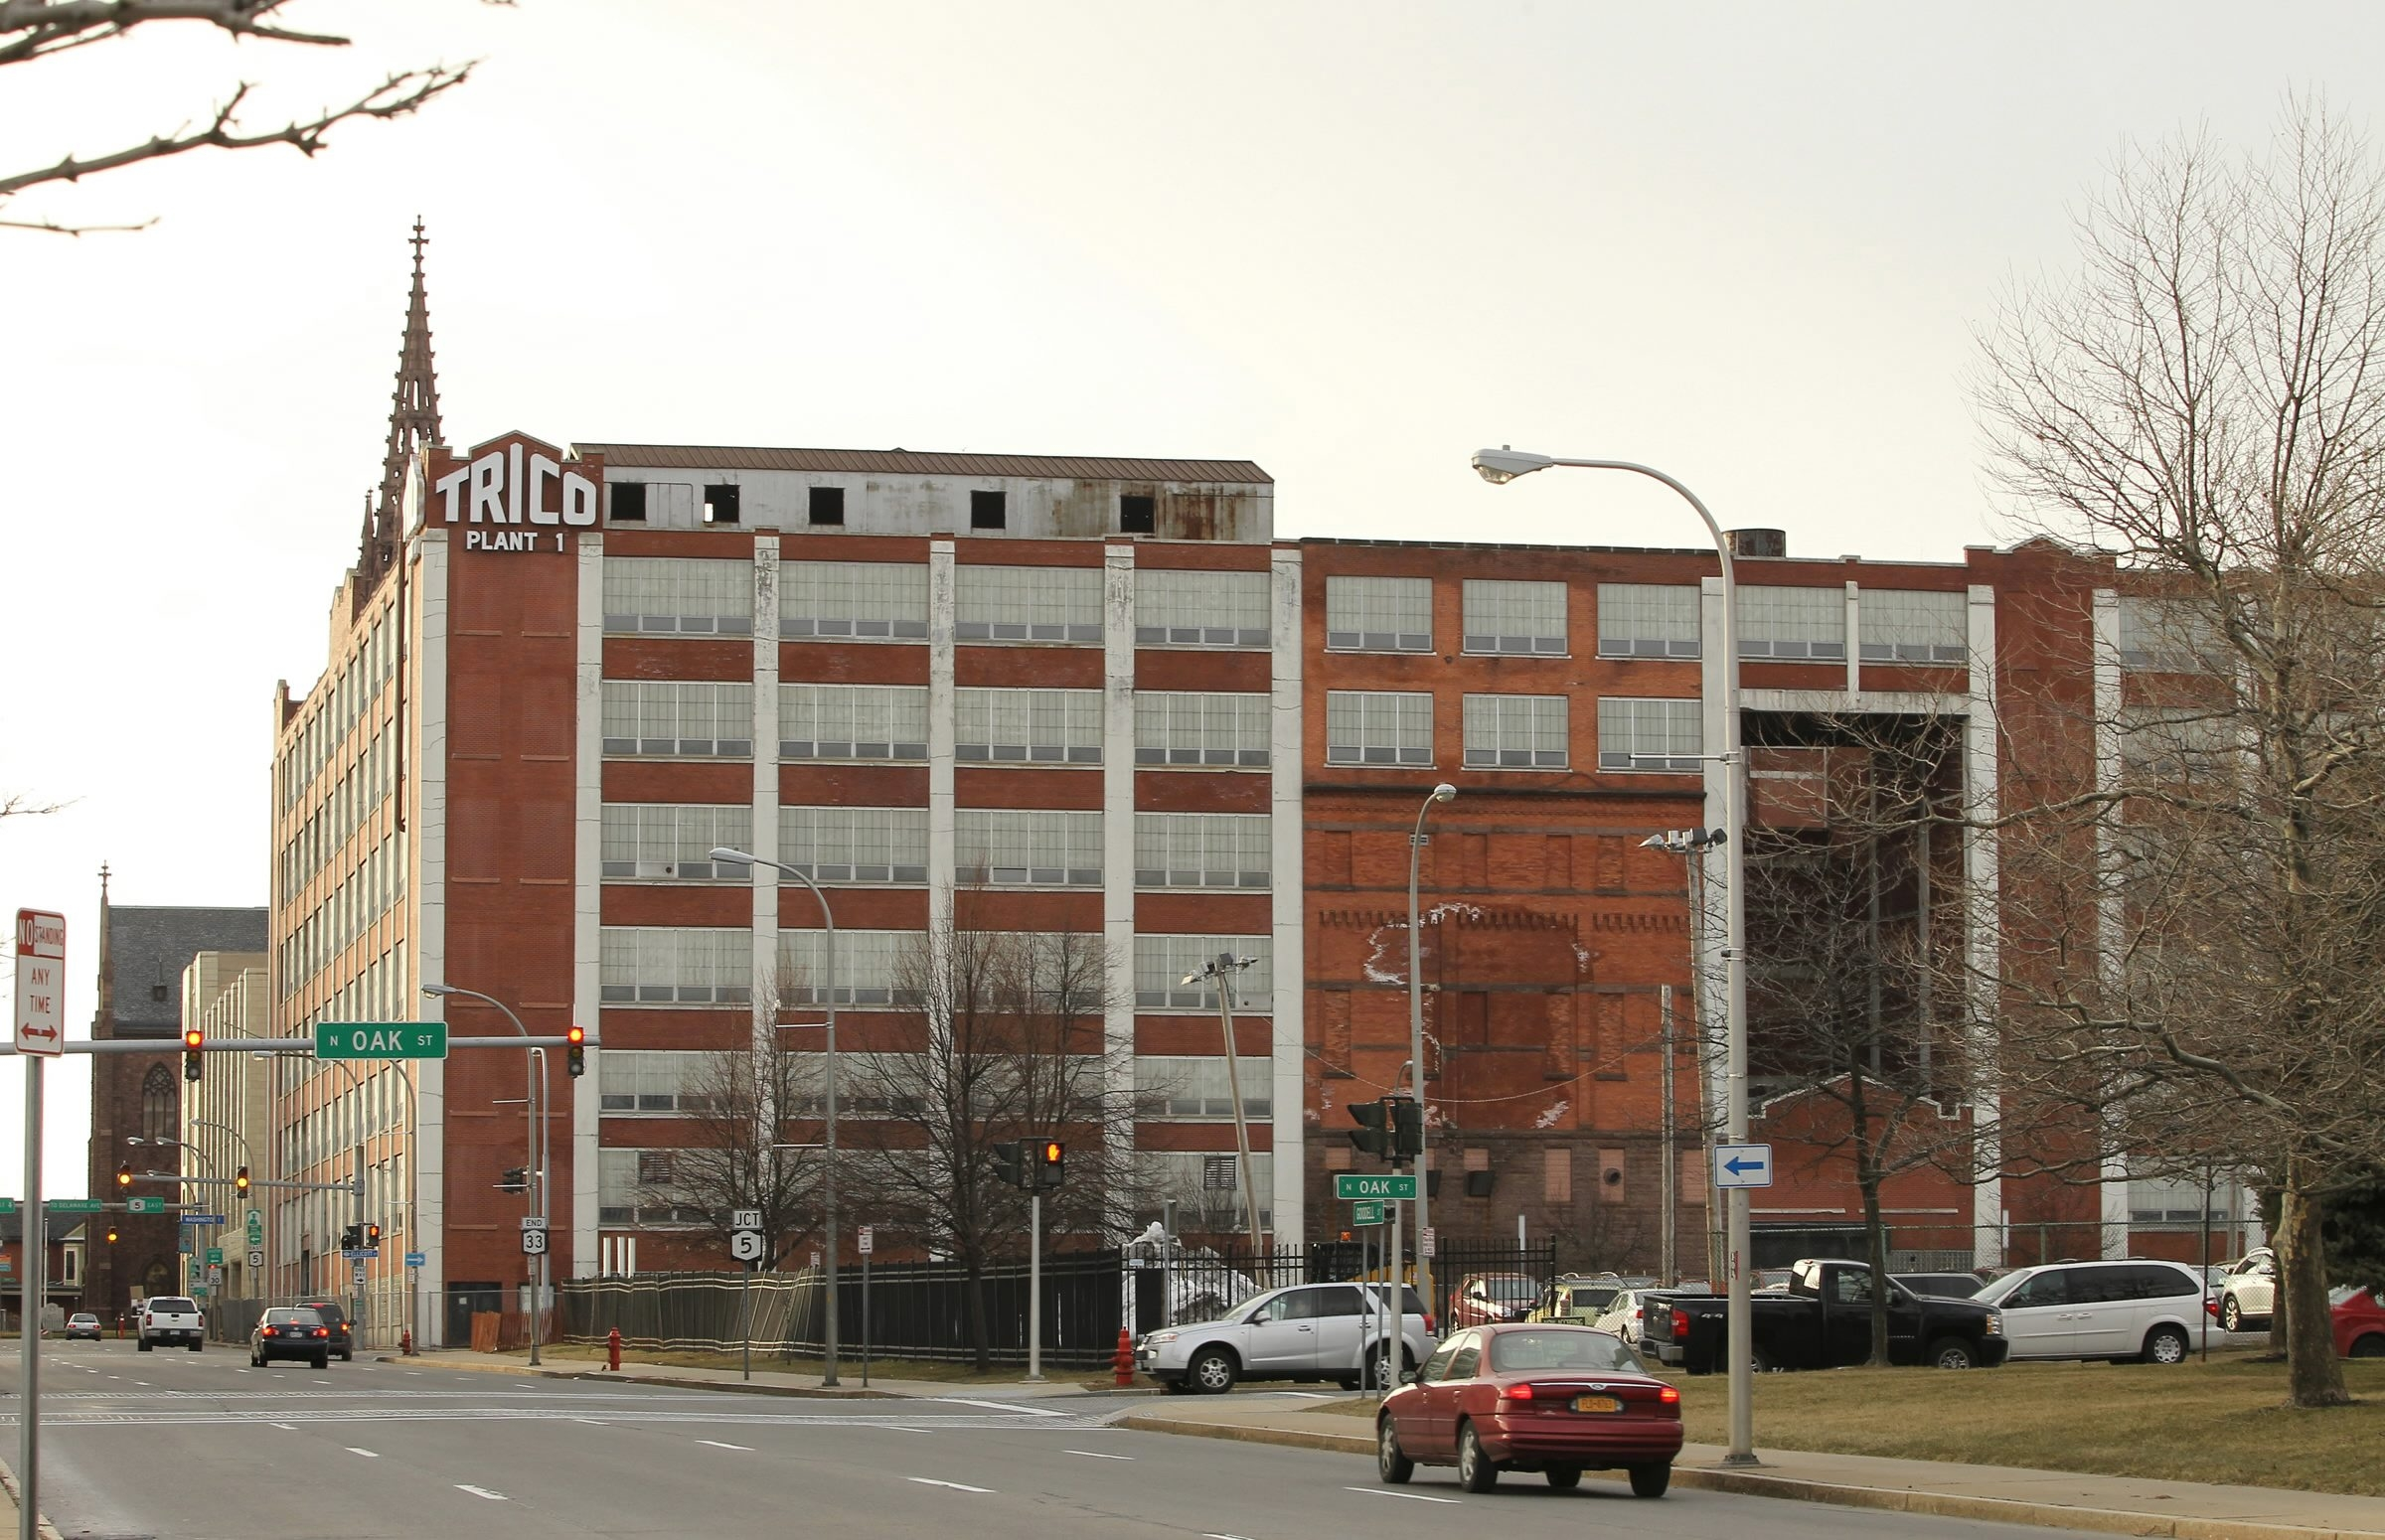 Krog Corp. on Friday announced a $50 million plan to work with Hart Hotels Inc. to redevelop the long-vacant former Trico building on Ellicott Street.